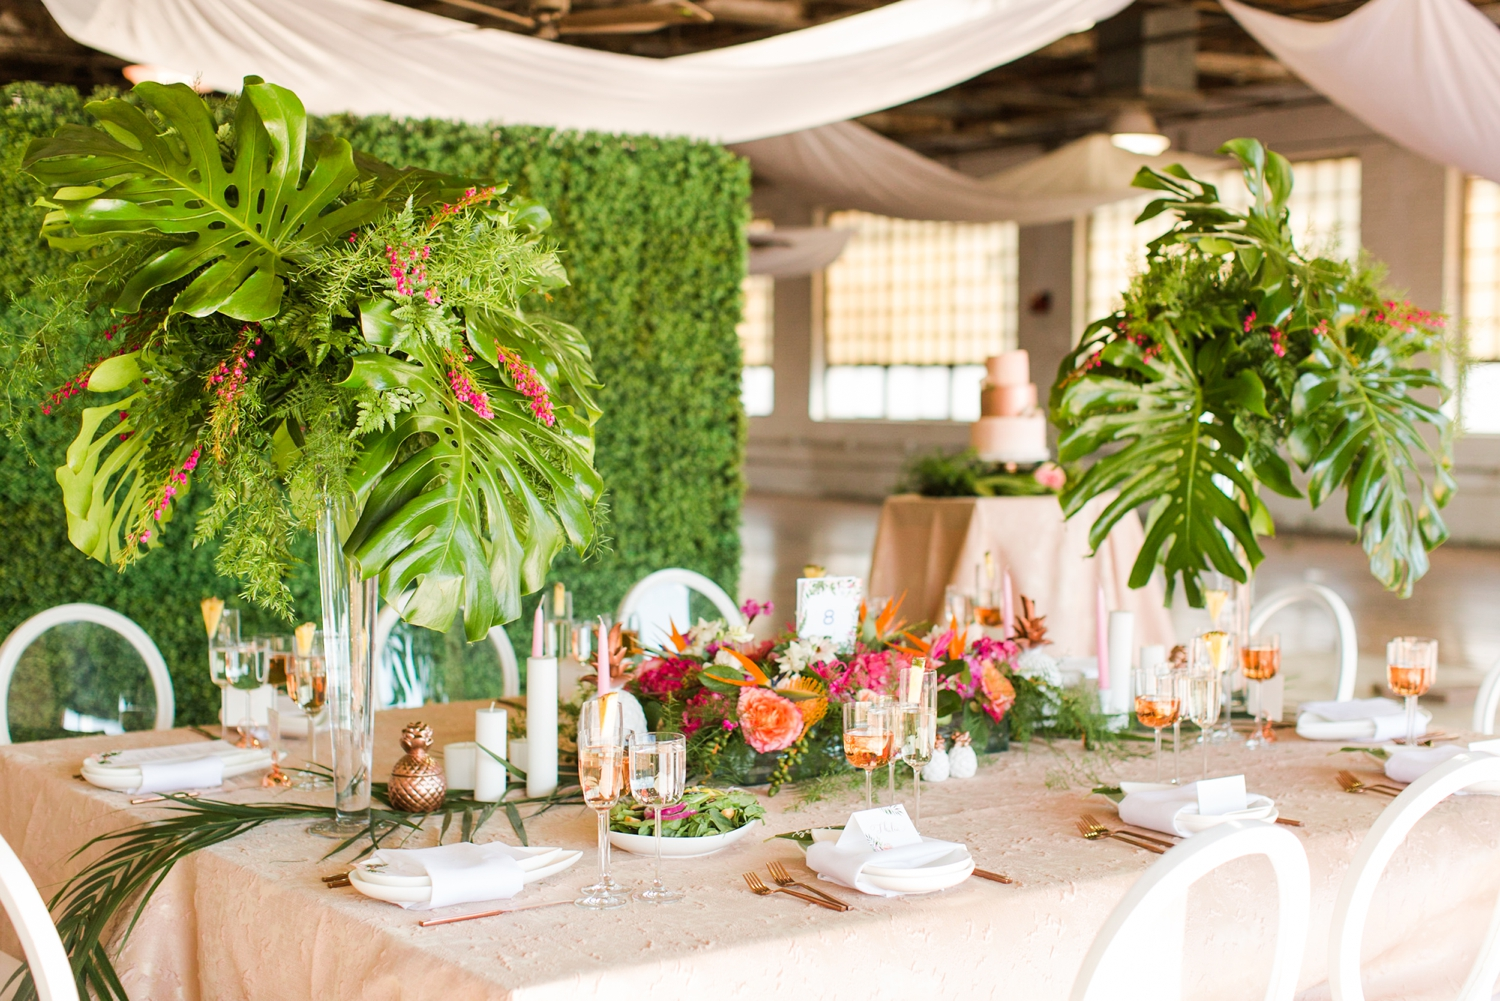 tropical-warehouse-wedding-boathouse-305-knowlton-bridgeport-connecticut-new-york-hawaii-photographer-shaina-lee-photography-photo-84.jpg